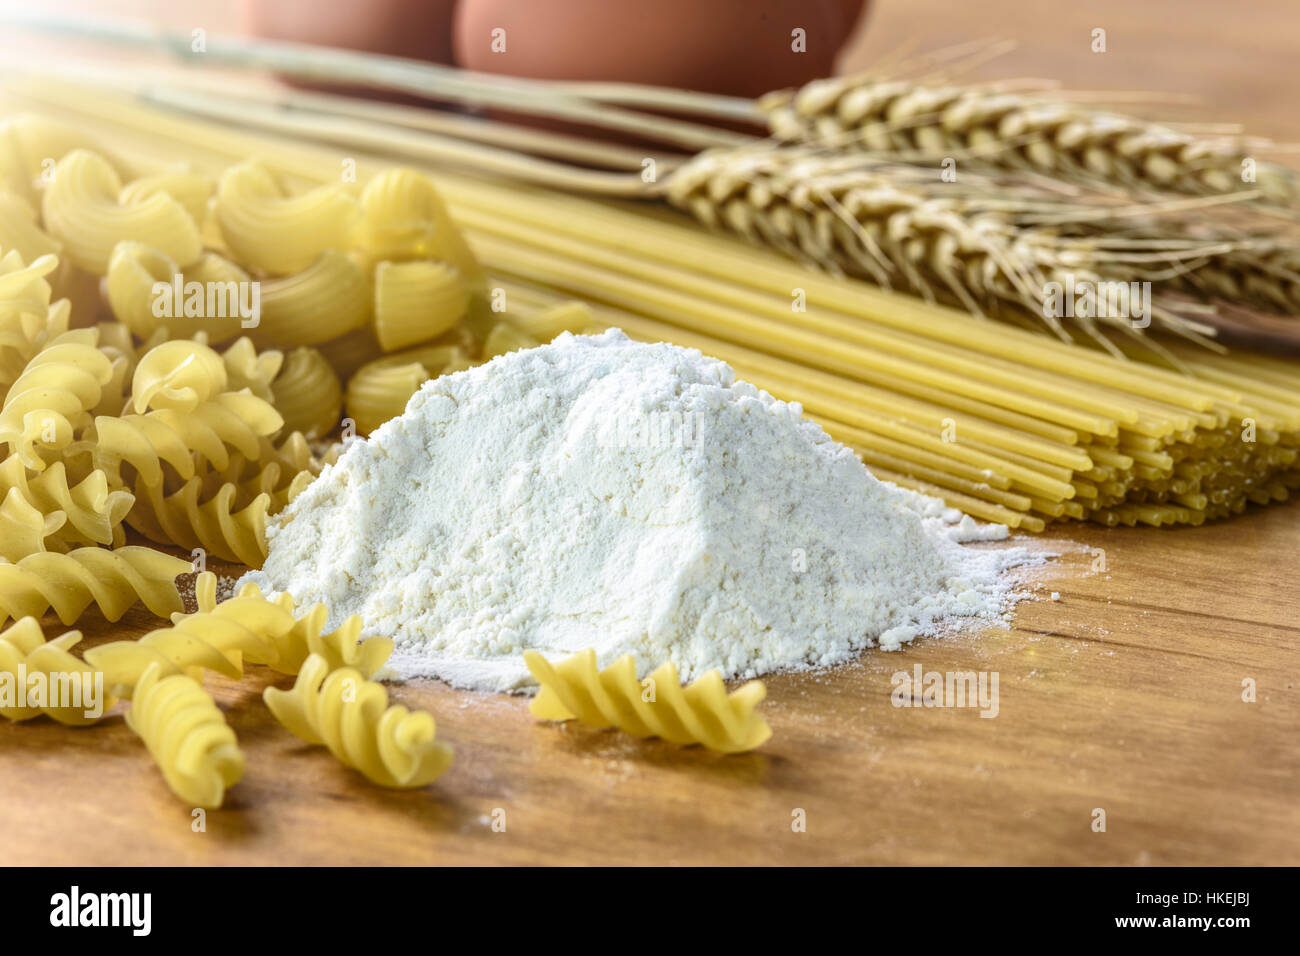 The Concept Of Producing Different Types Of Pasta Made From Flour ...